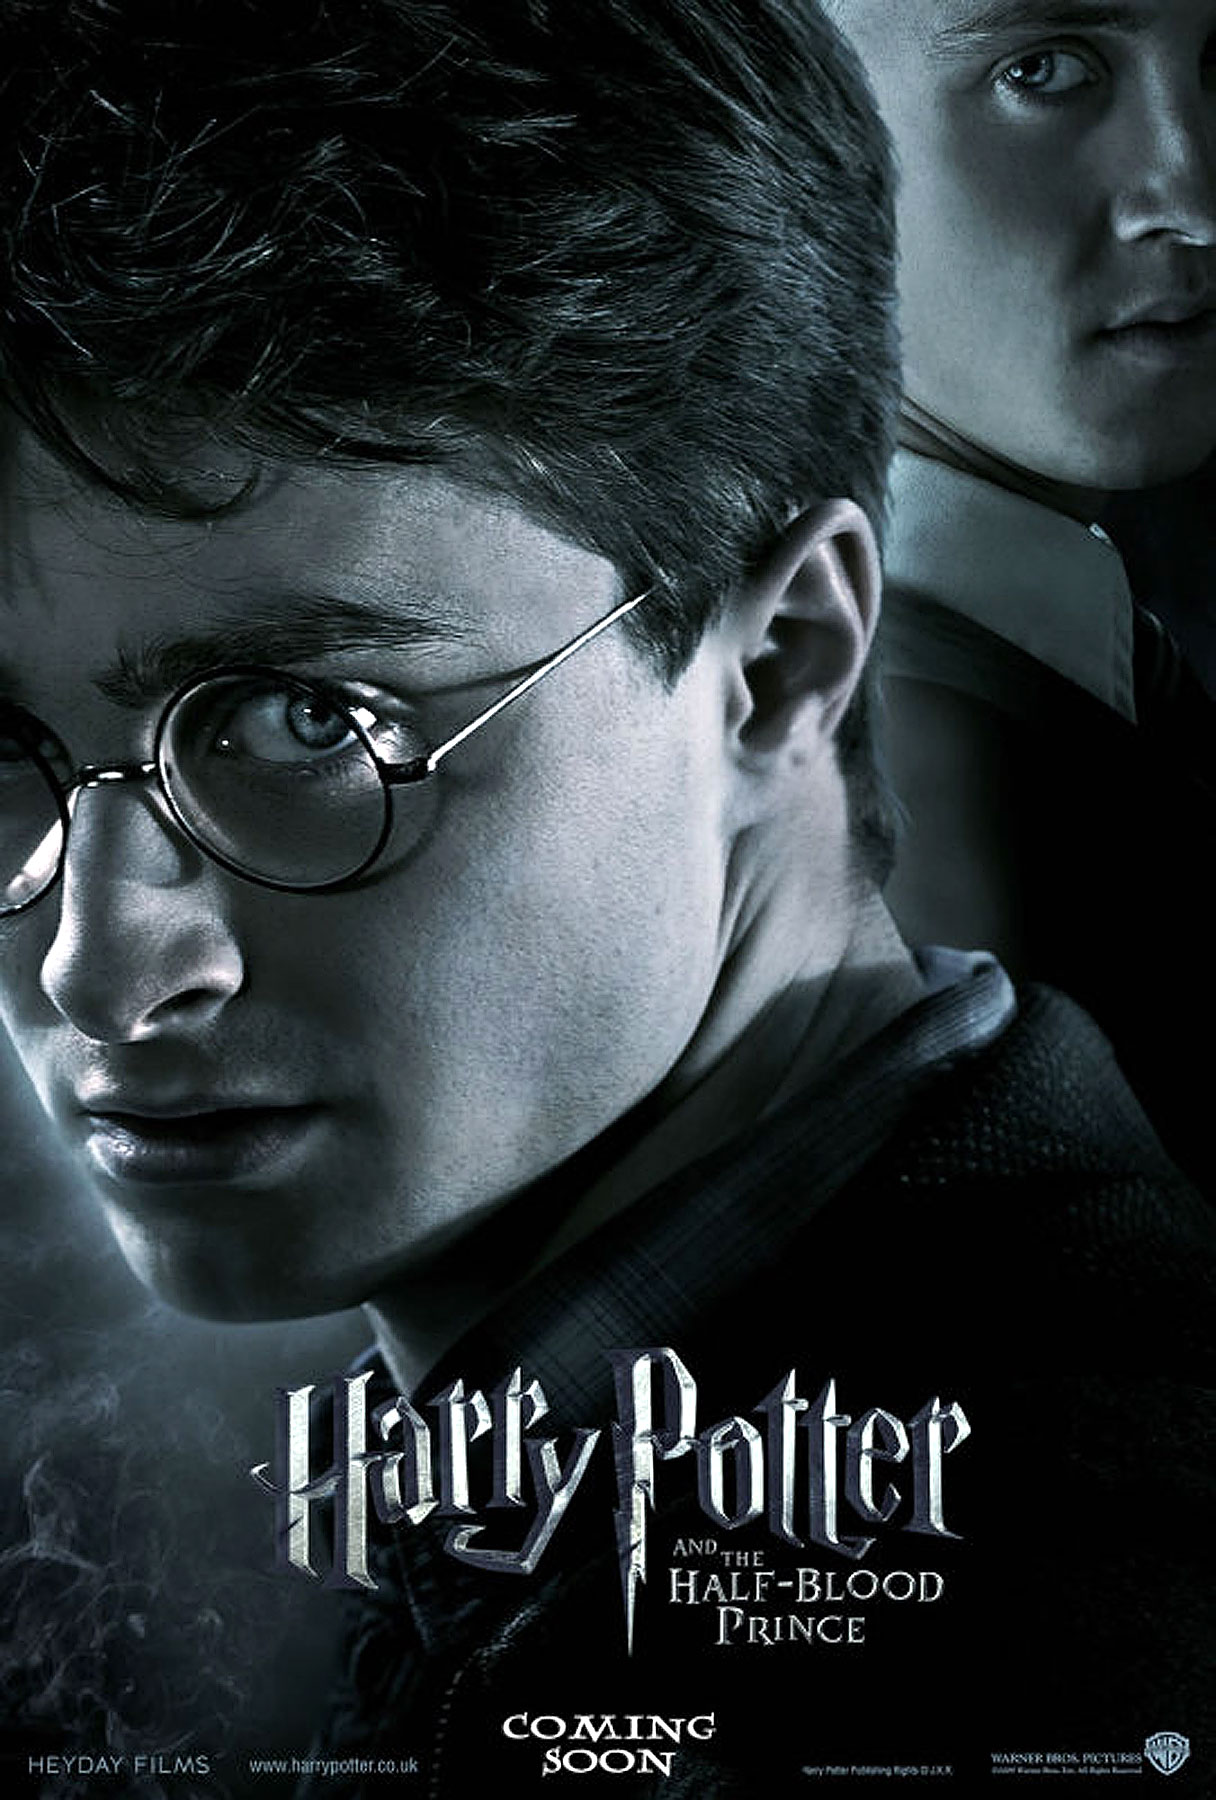 Harry Potter and the Half-Blood Prince: New Posters!